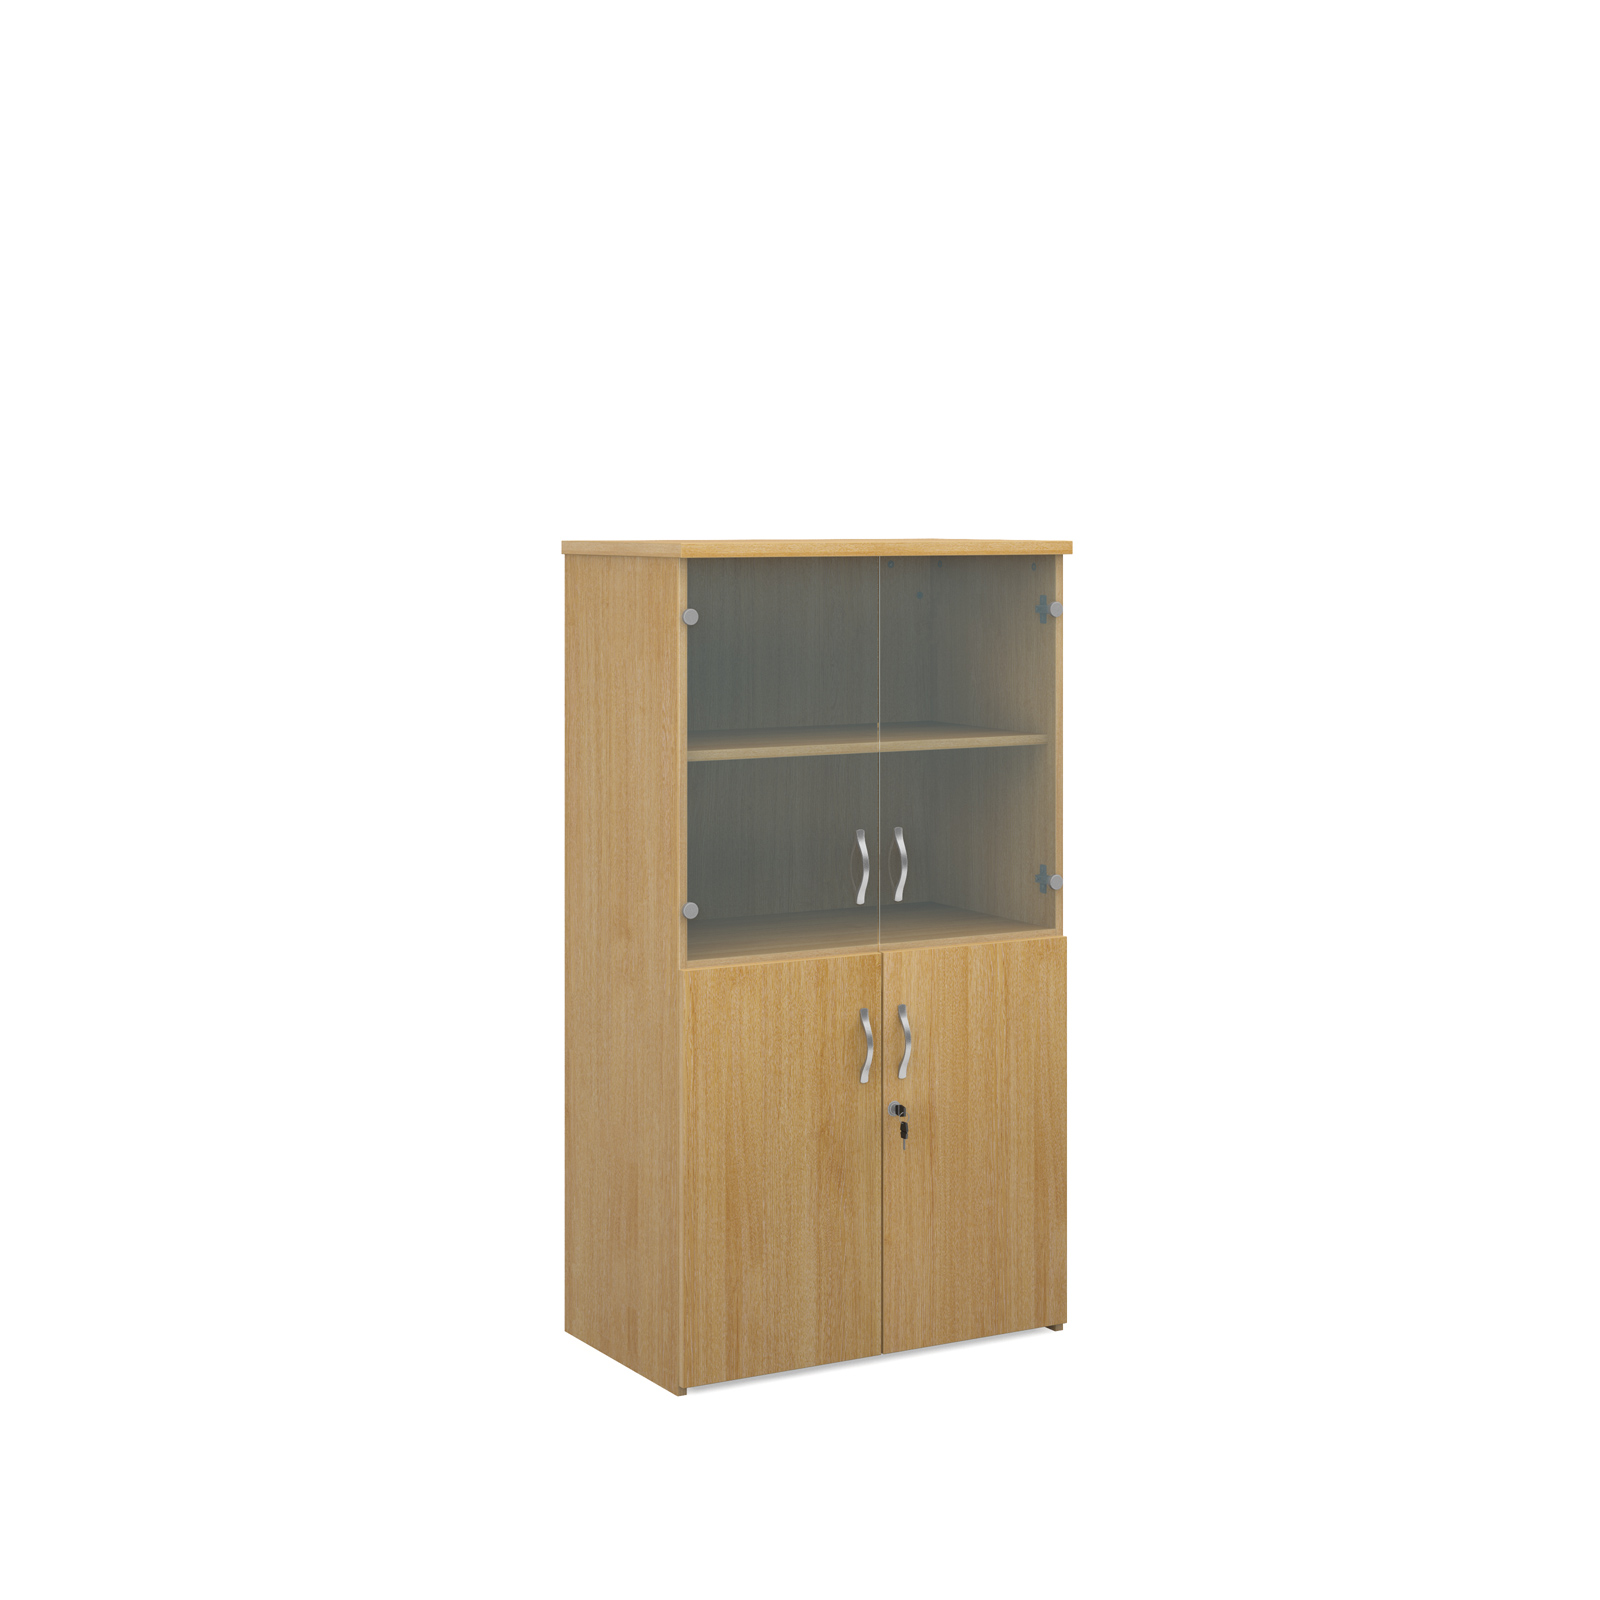 1440mm high combination unit with glass and wood doors in oak